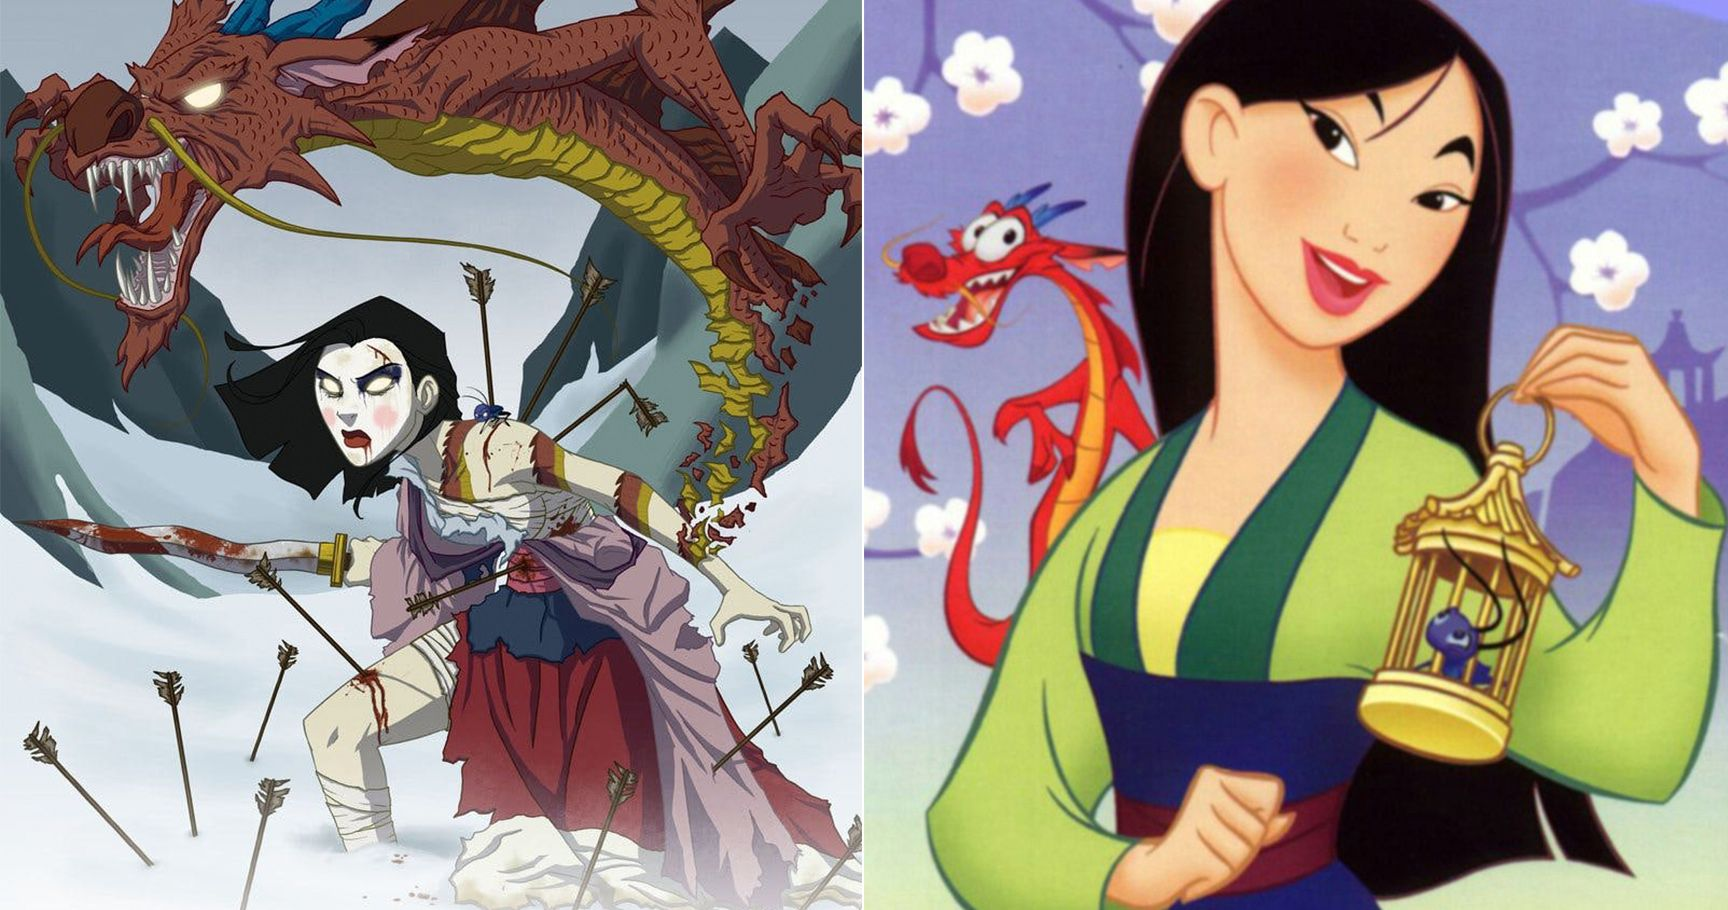 15 Twisted Disney Princesses Reimagined As The Stuff Of Nightmares